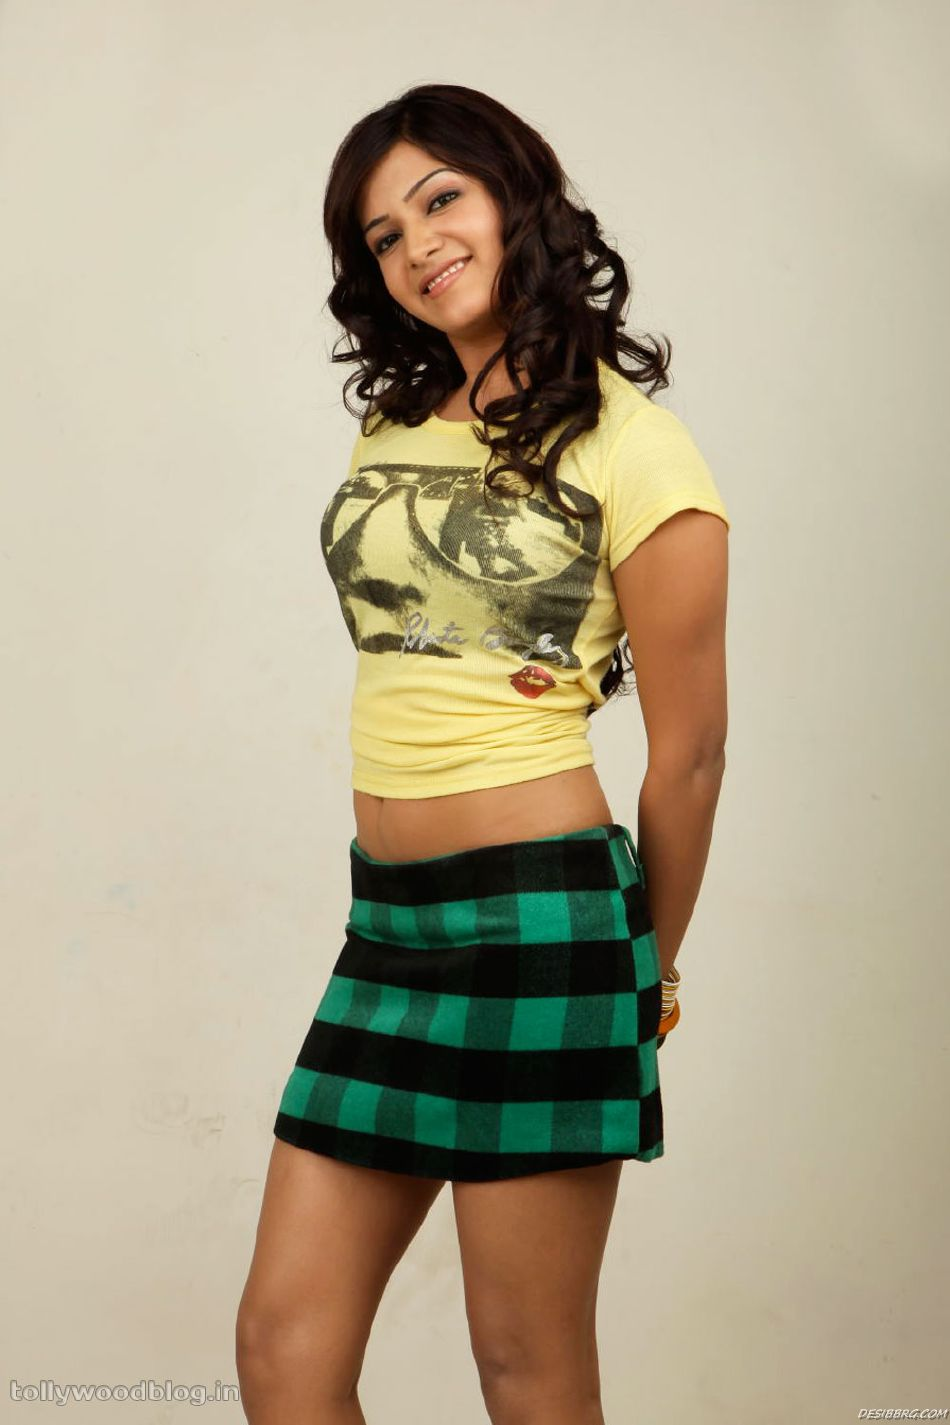 Samantha hot photos old collection 1 | Picture 8